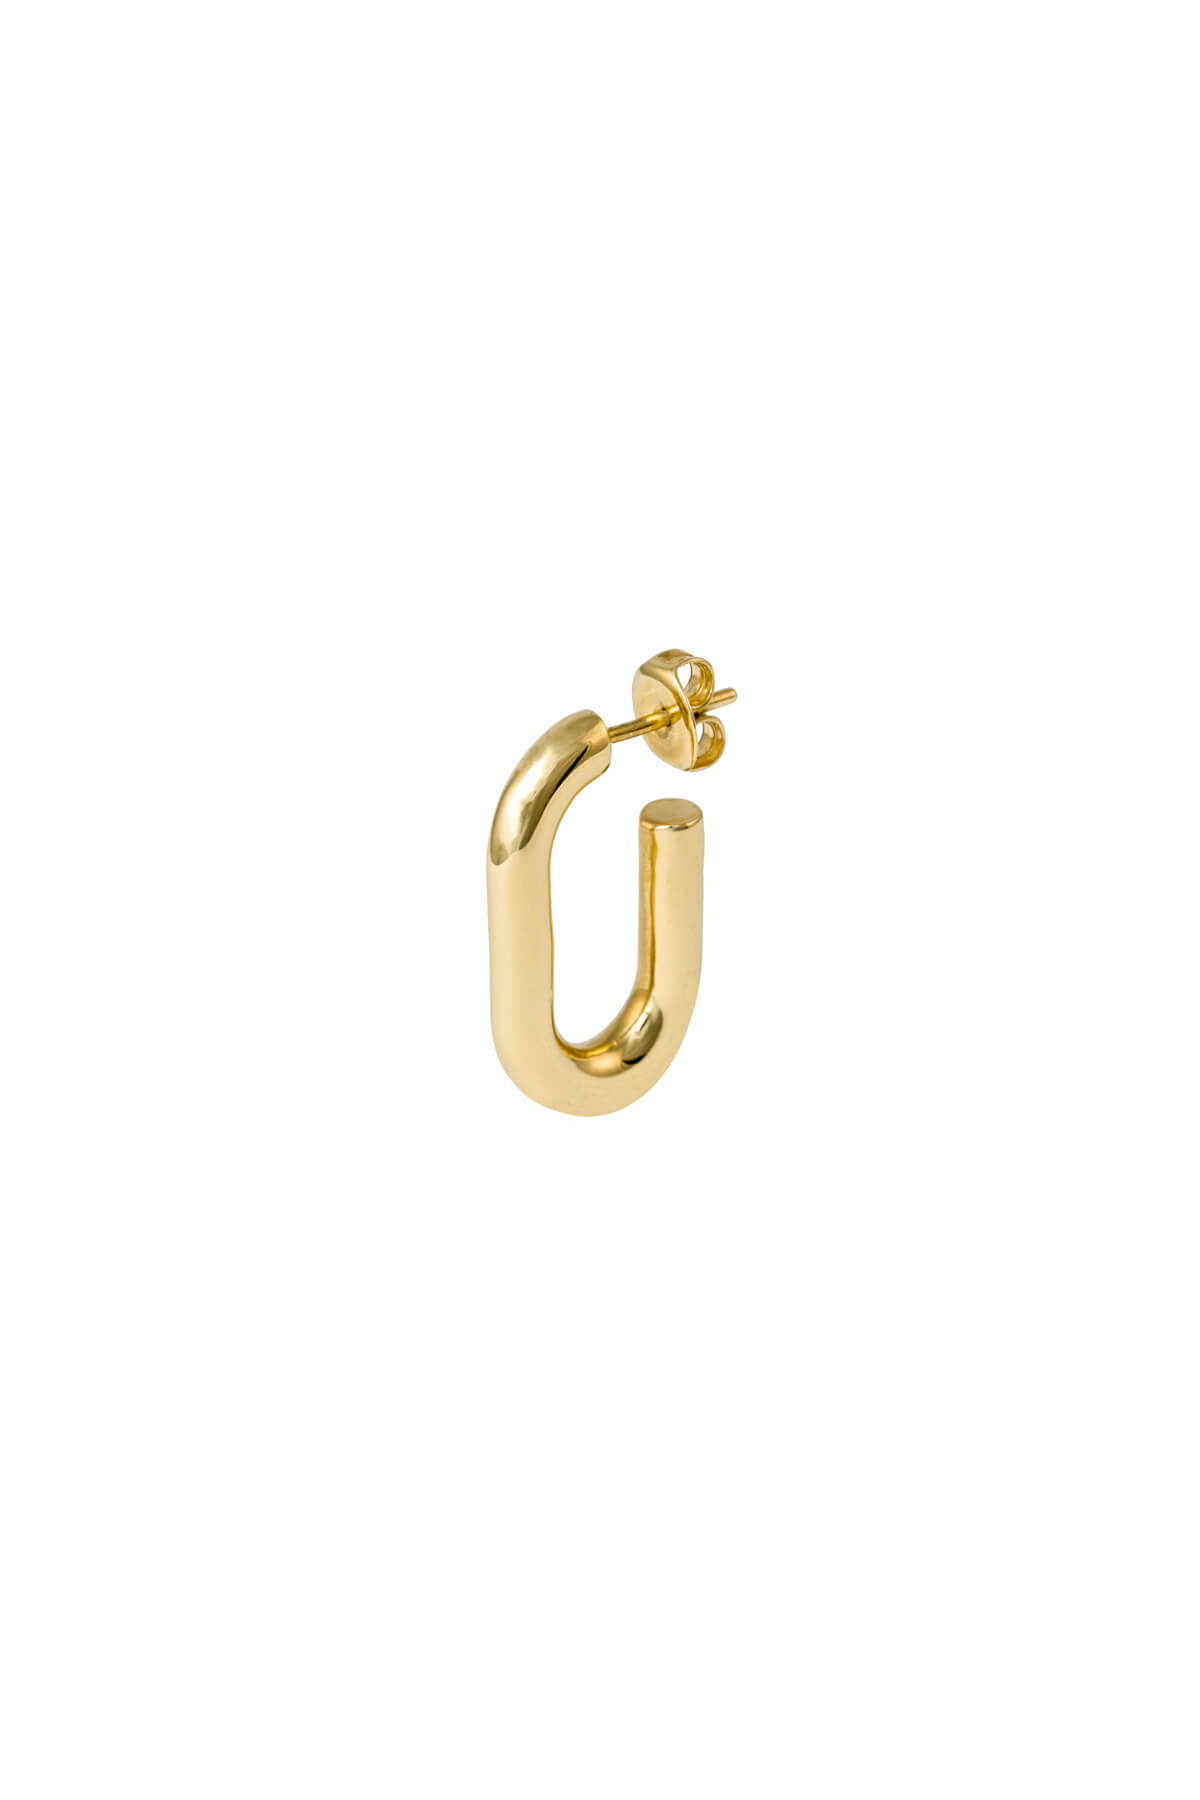 the-medium-golden-link-earring-by-glenda-lopez-lateral